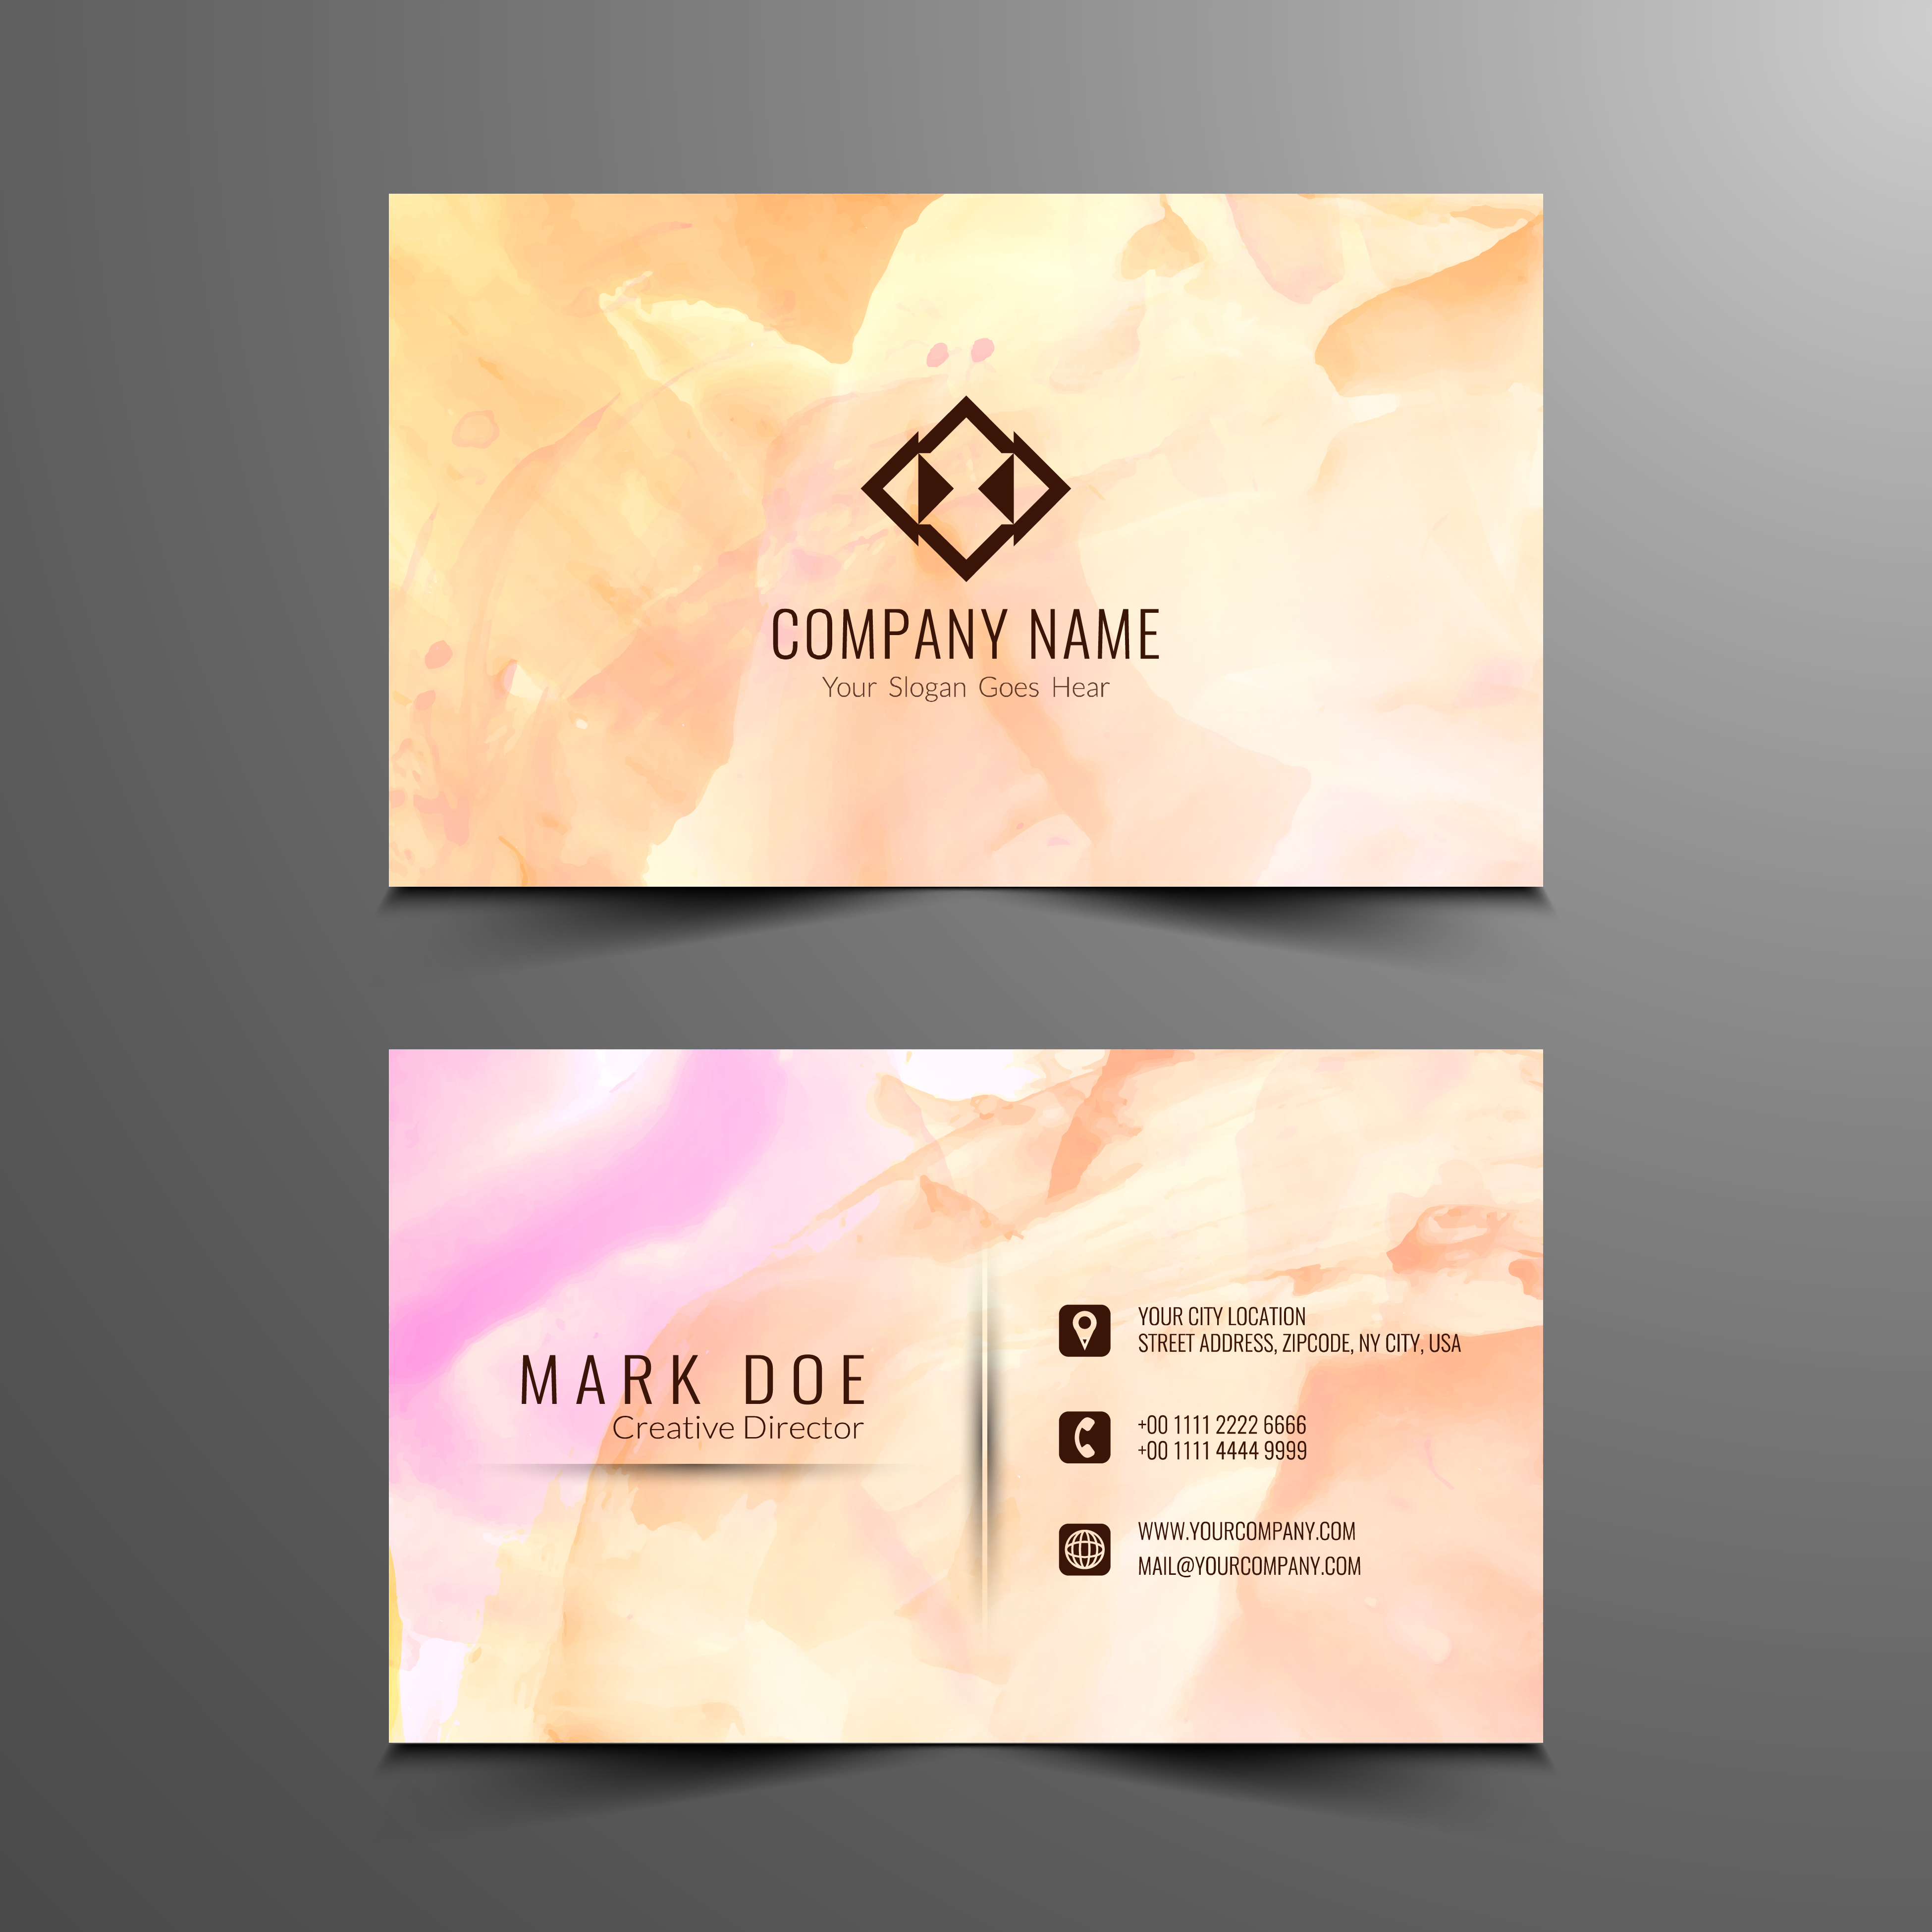 Abstract Flowers Logos:  Abstract Watercolor Business Card Design Template